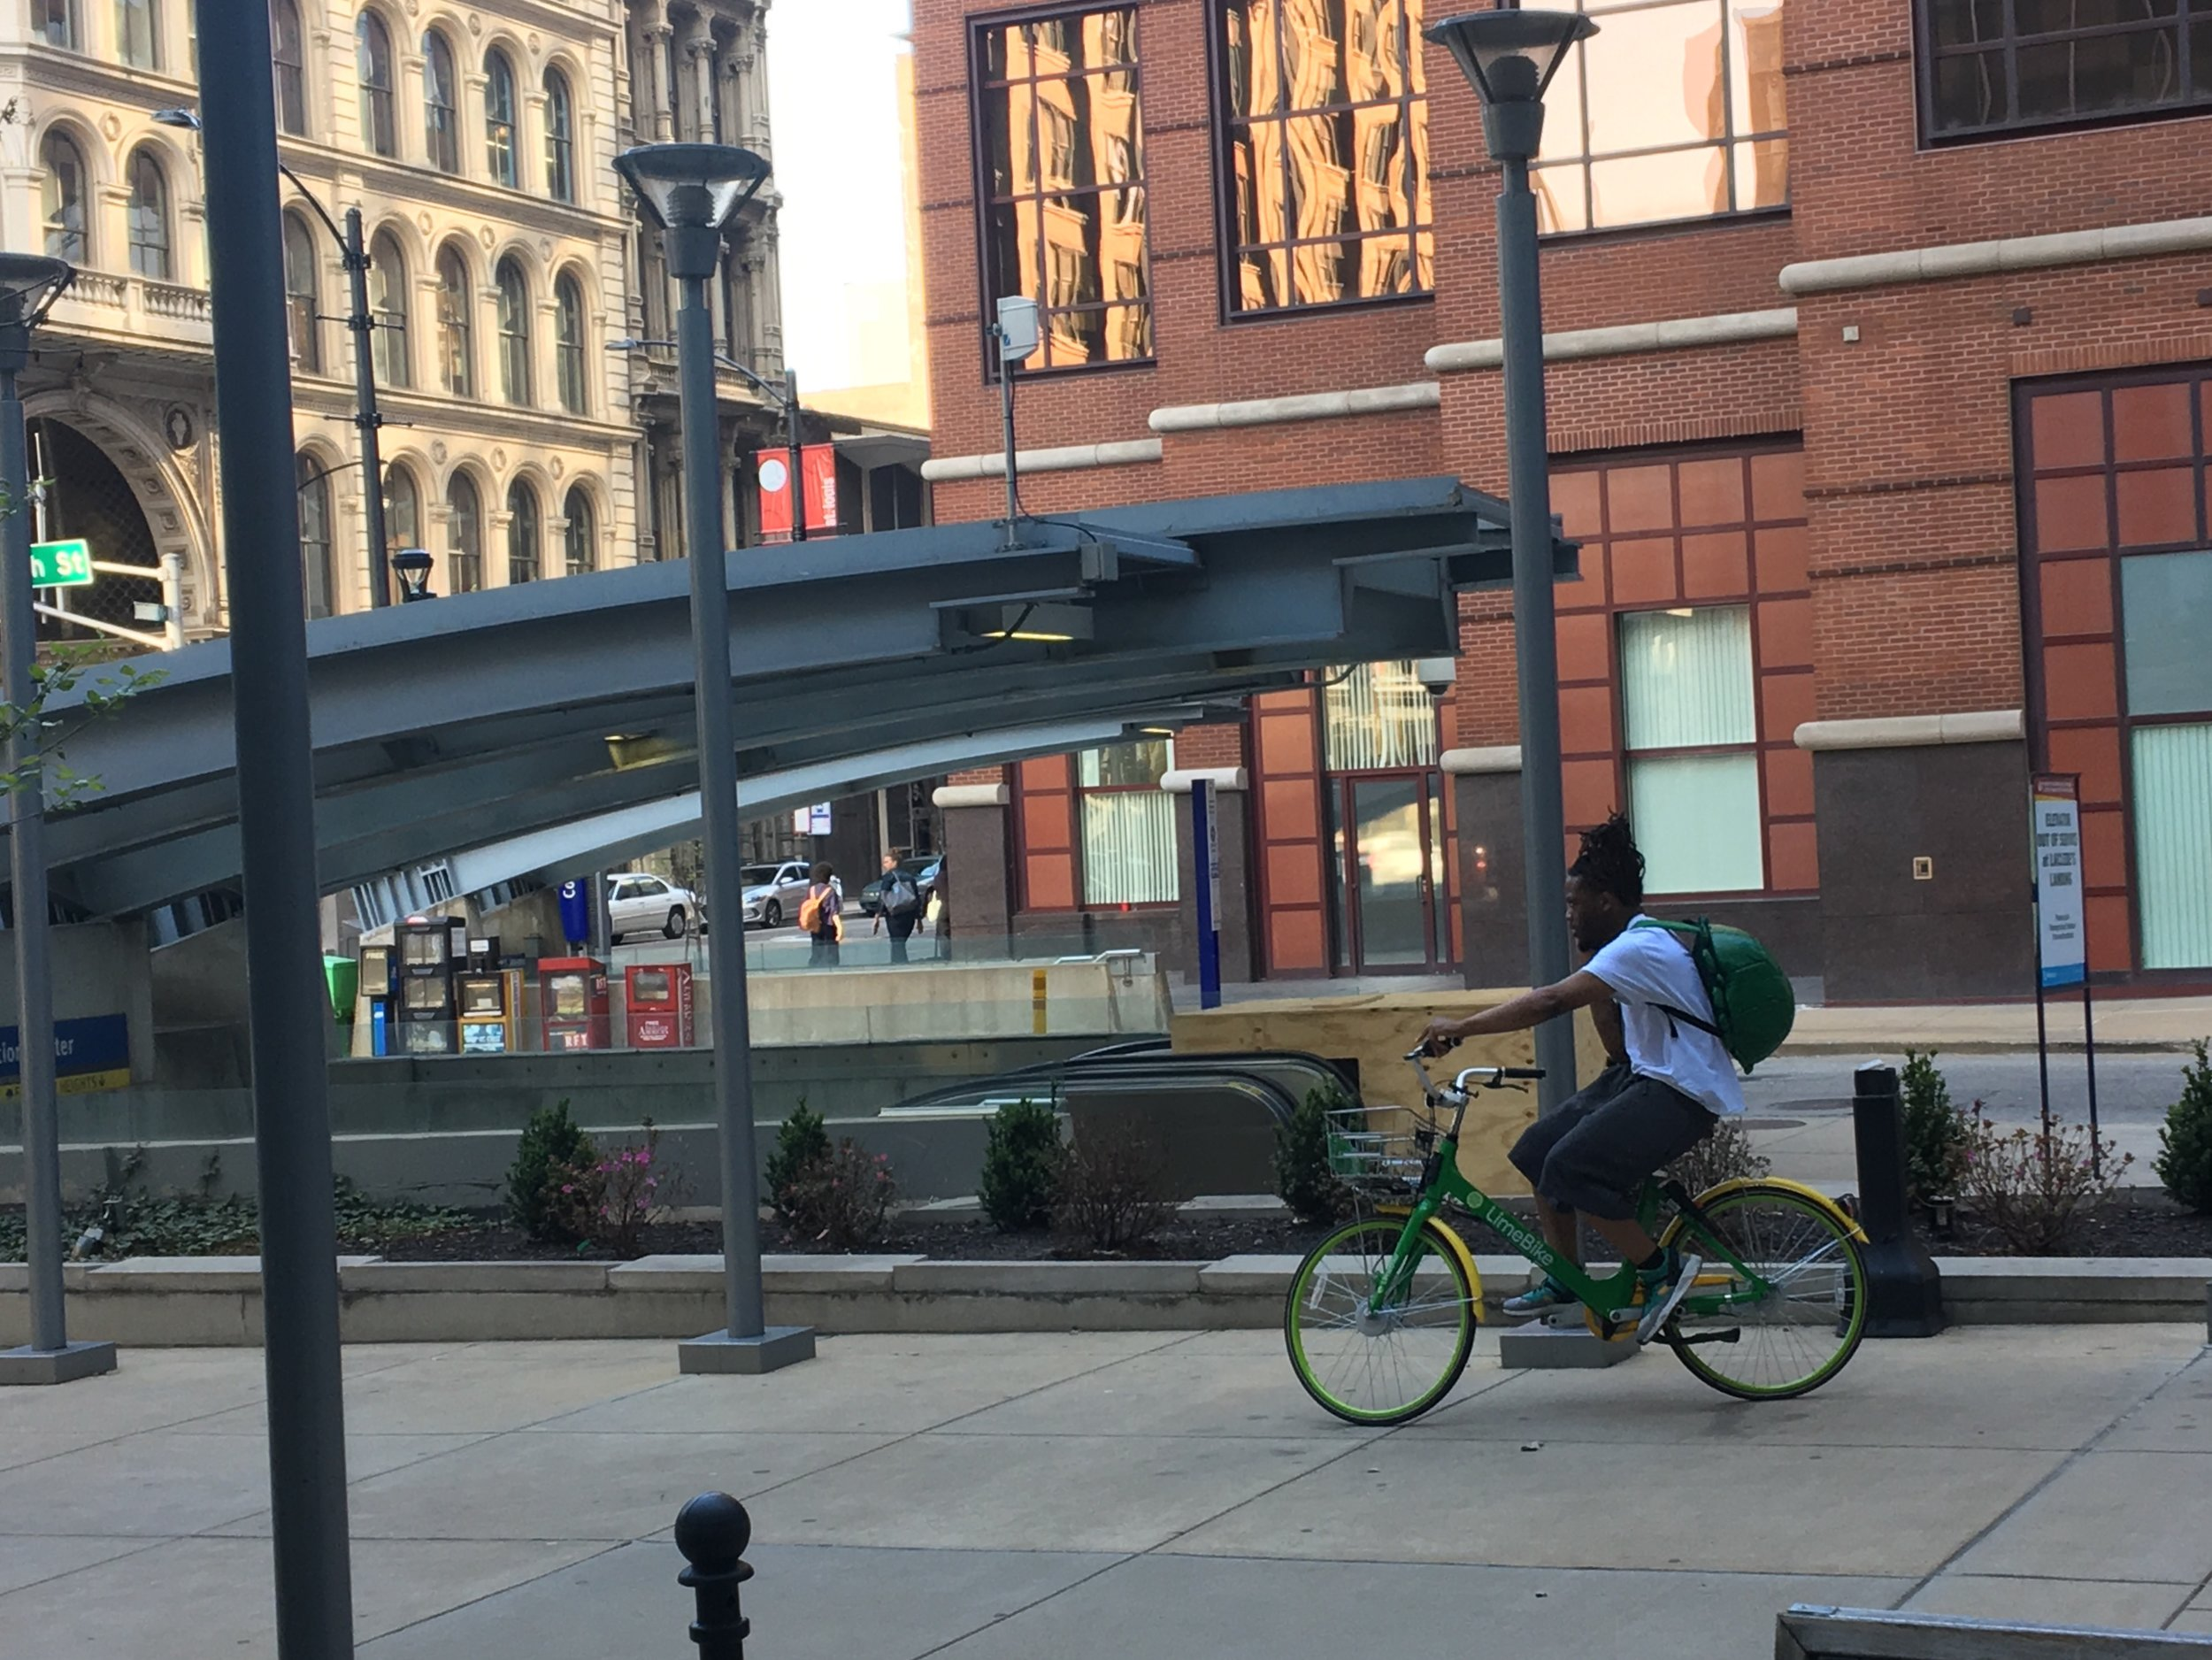 Convenience by the Metrolink stations